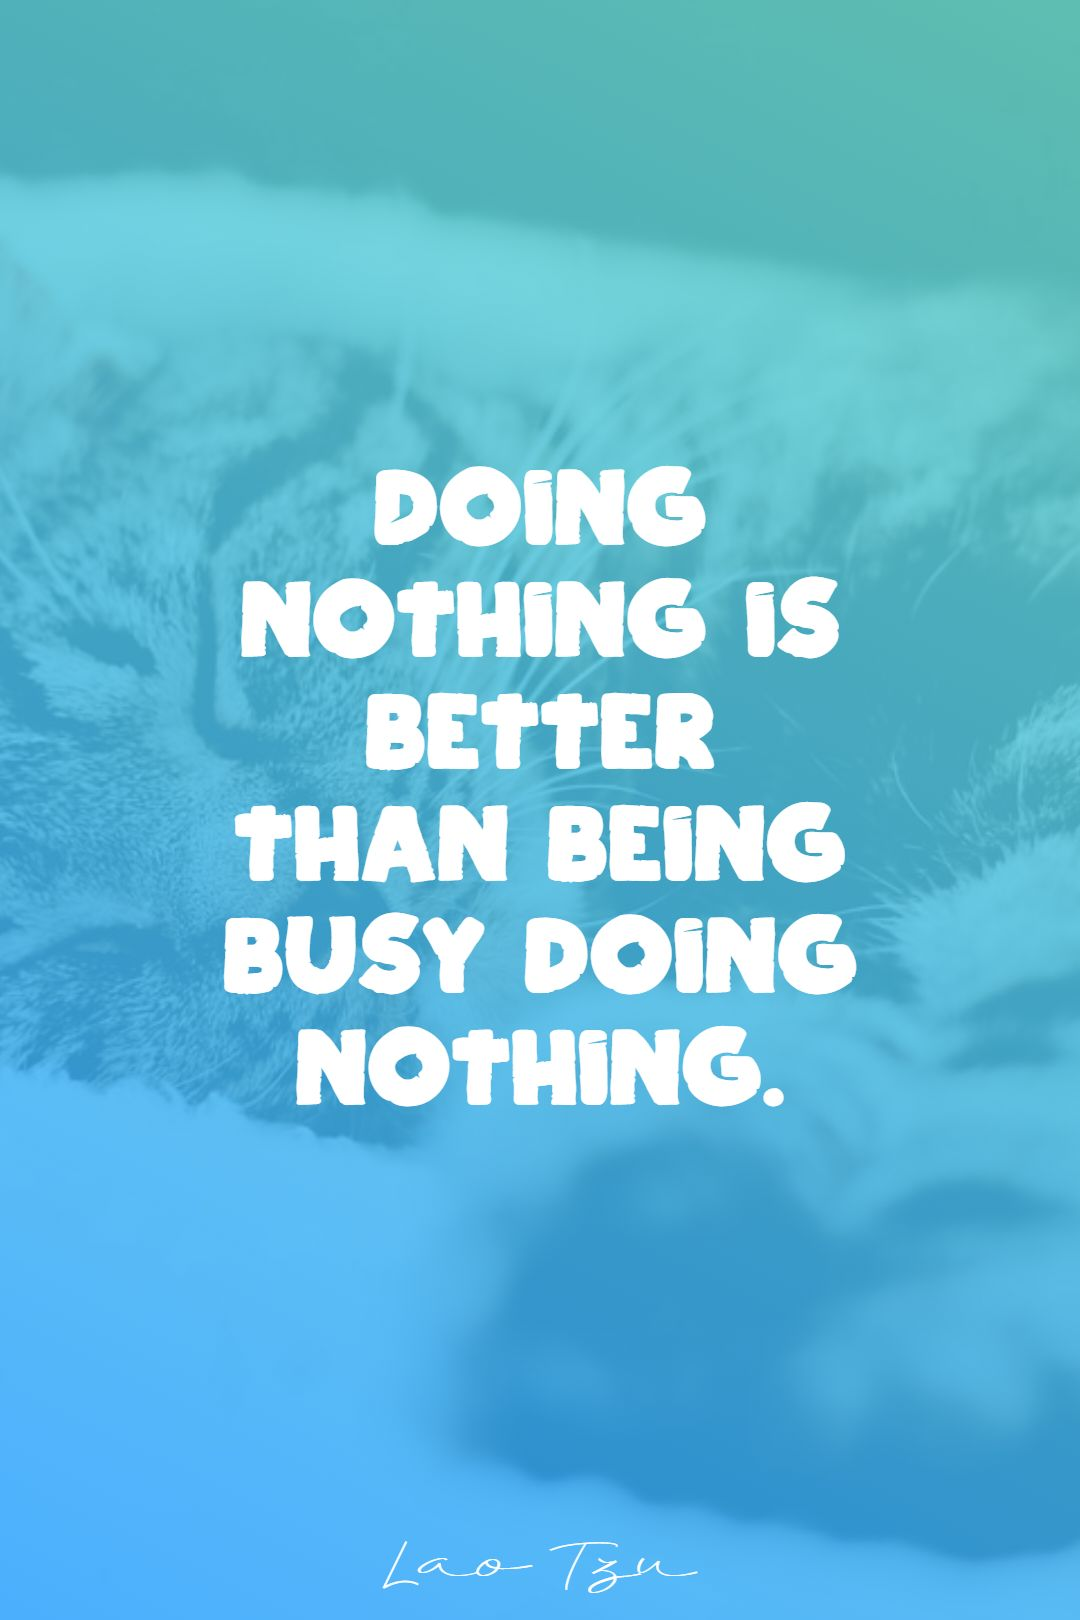 Quotes image of Doing nothing is better than being busy doing nothing.